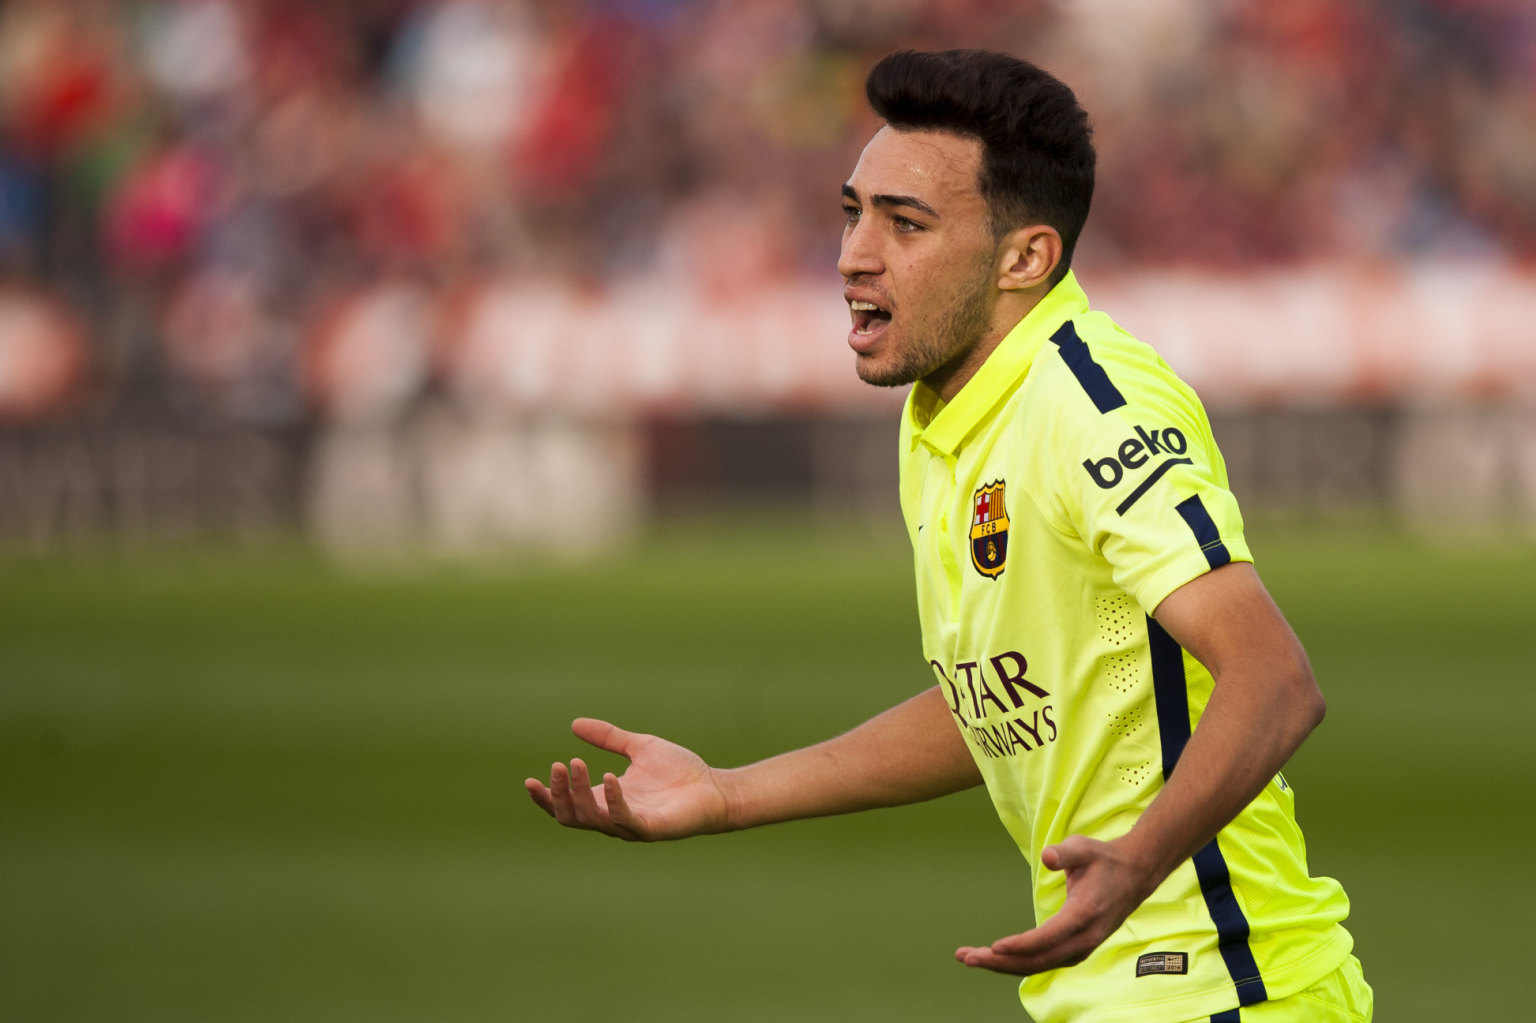 Munir playing in Almeria 1-2 Barcelona, for La Liga